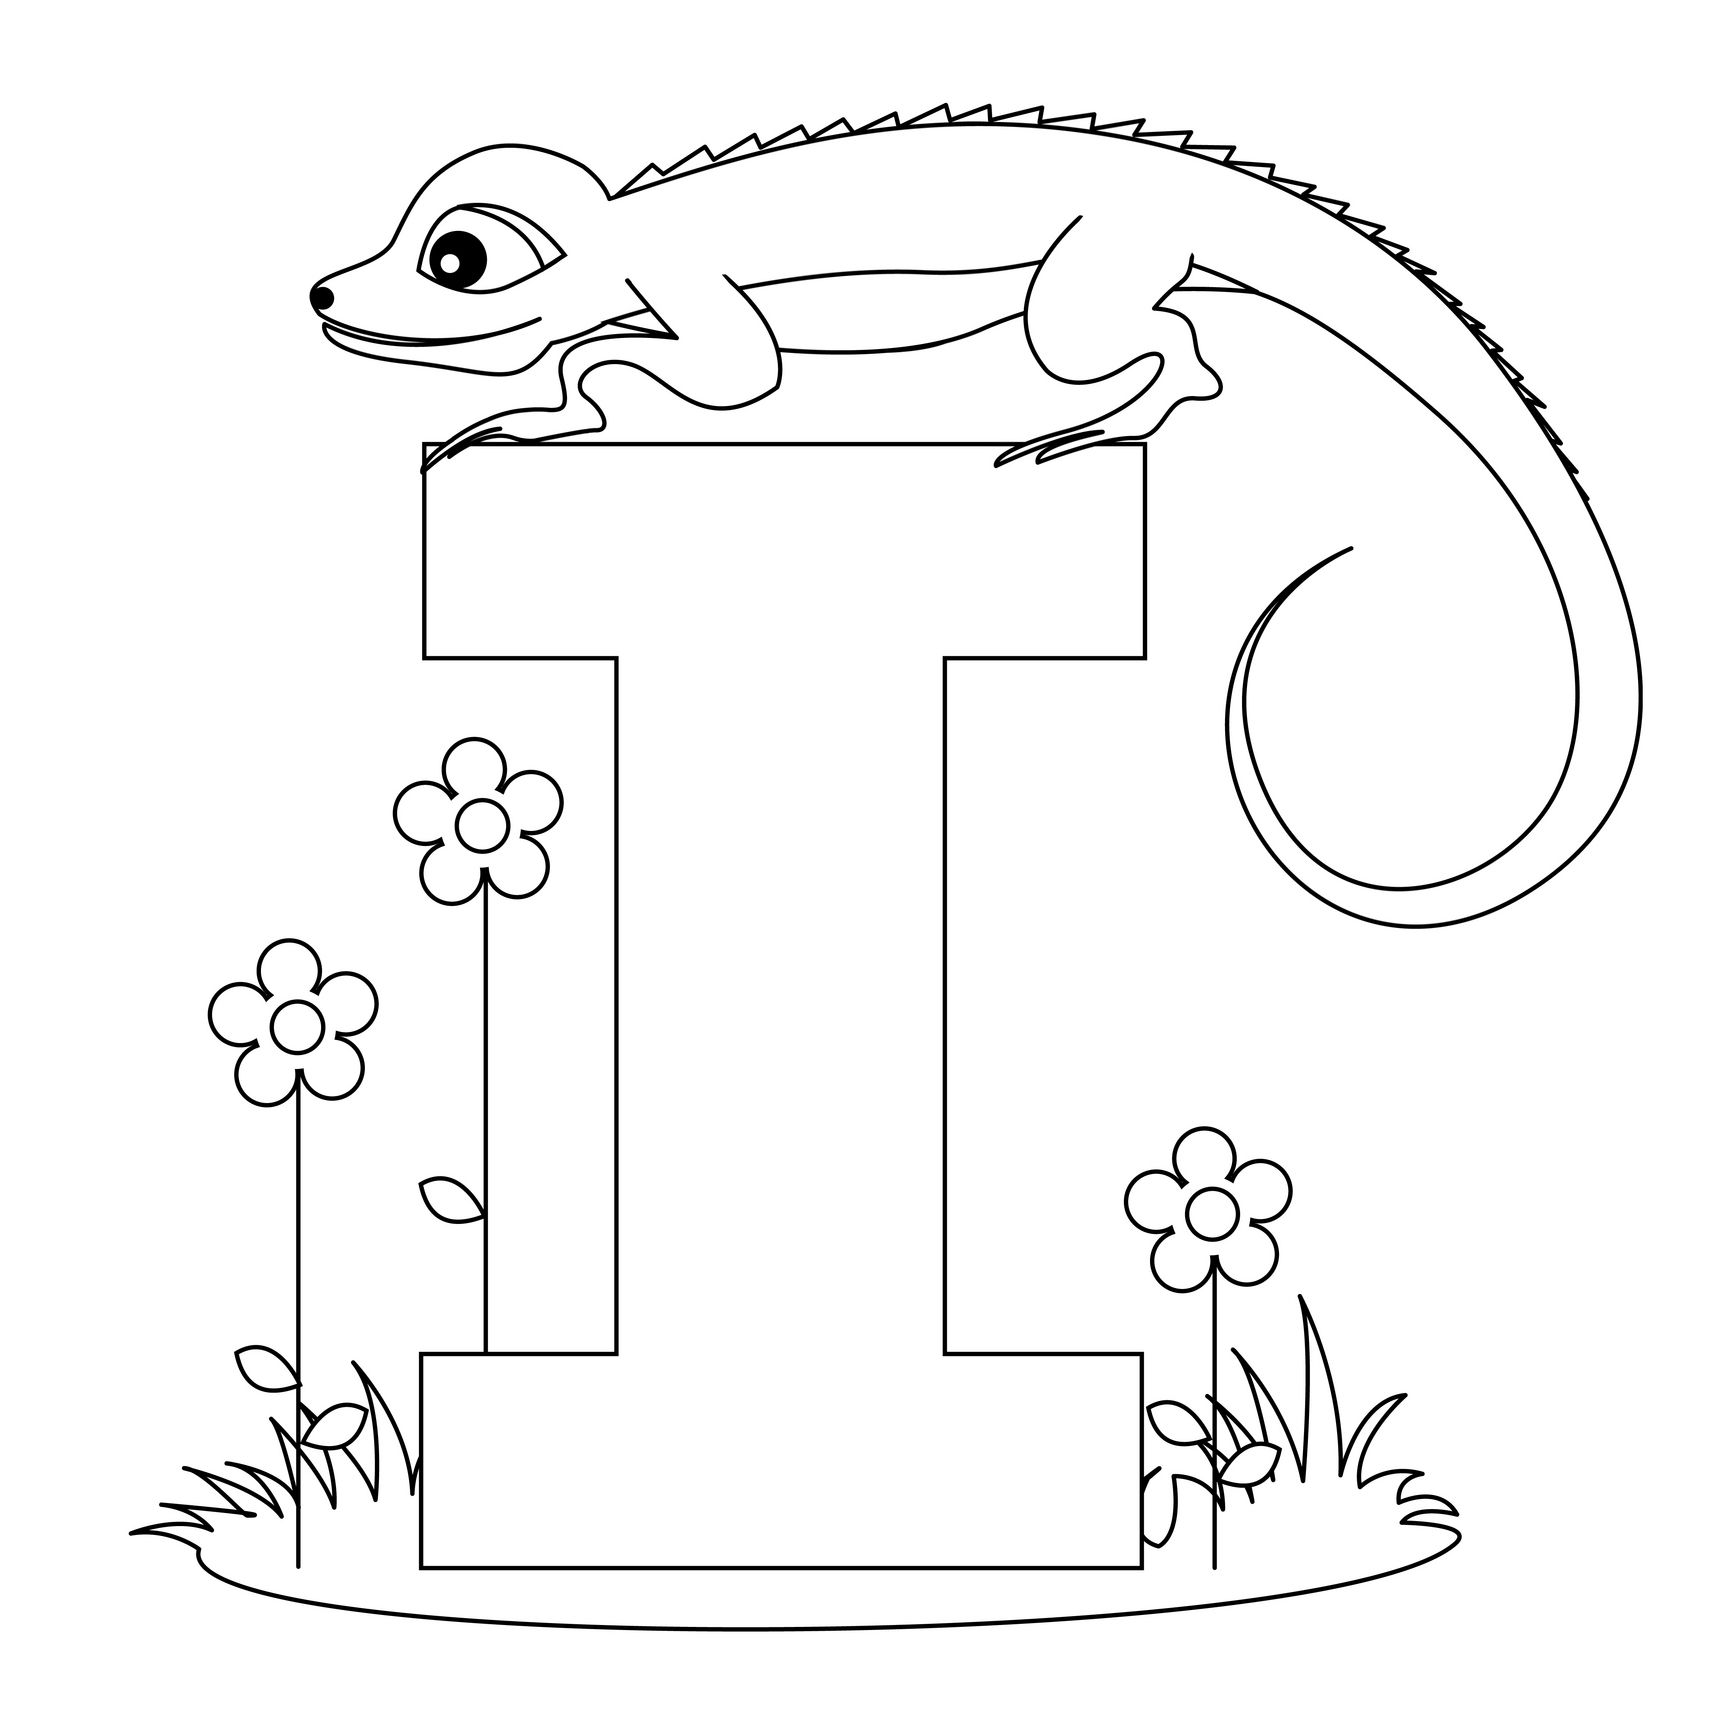 Image Detail For Animal Alphabet Letter I Coloring